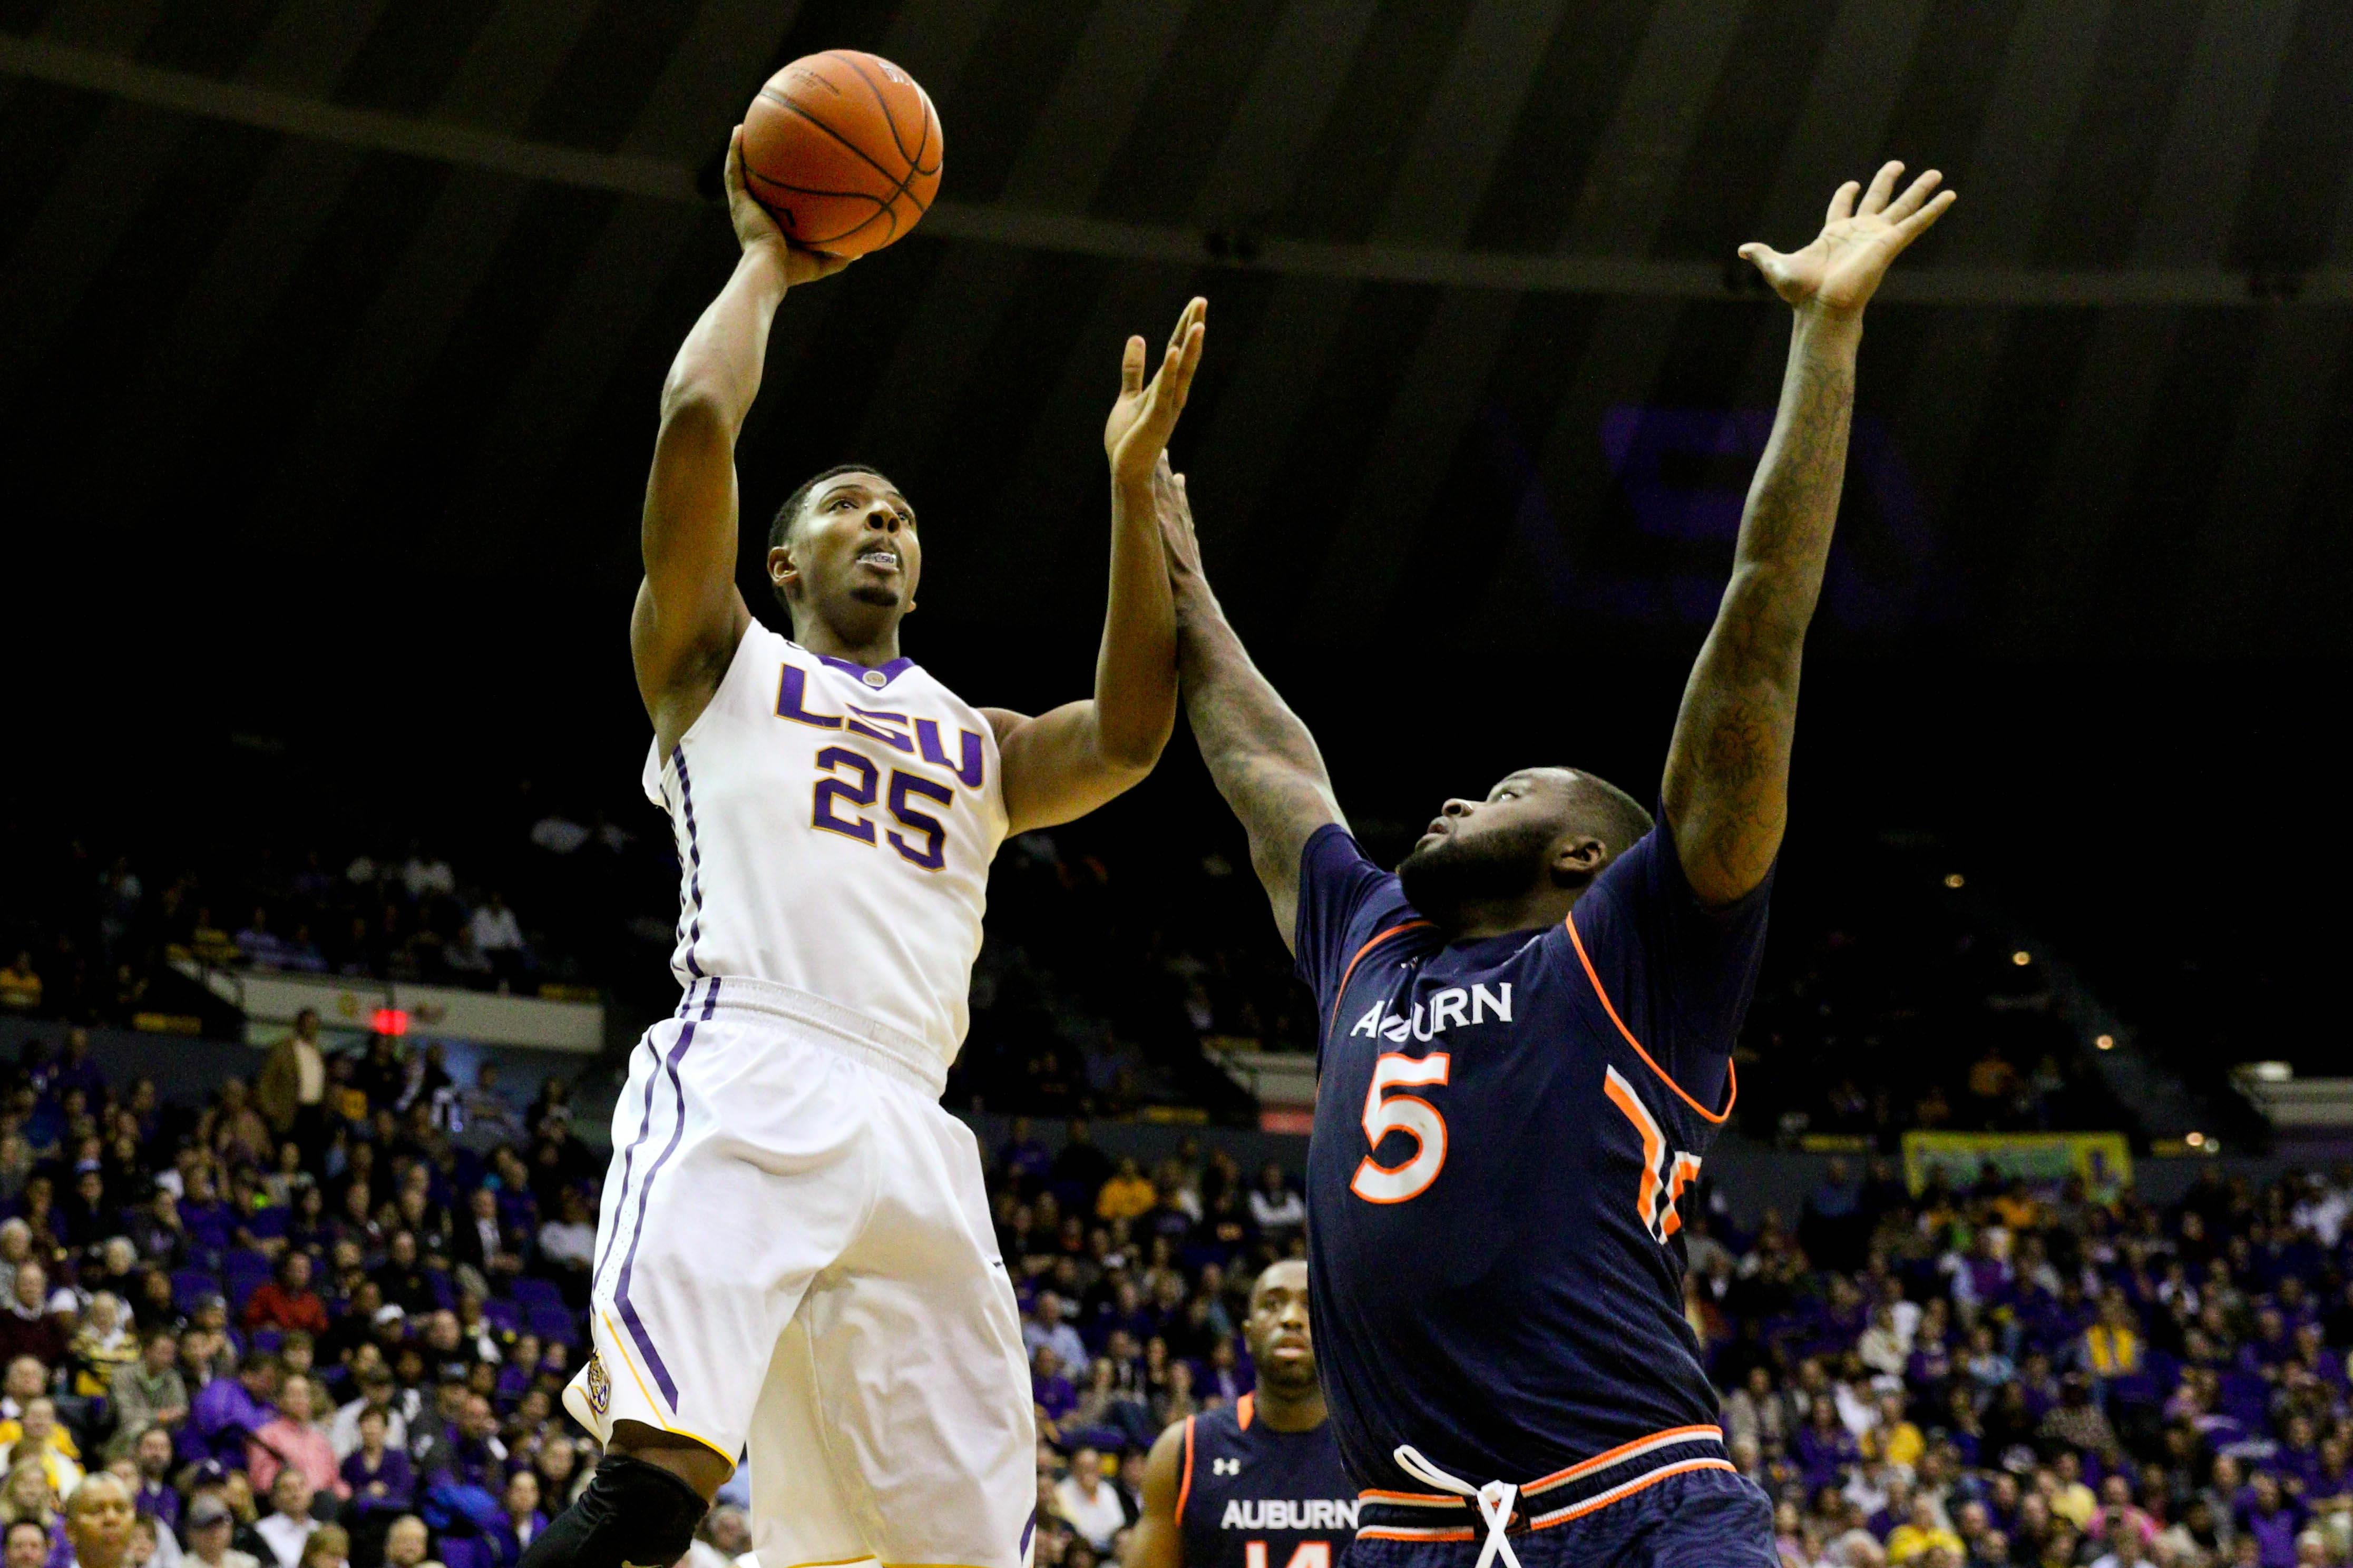 LSU's bright future dims a bit with Jordan Mickey's departure